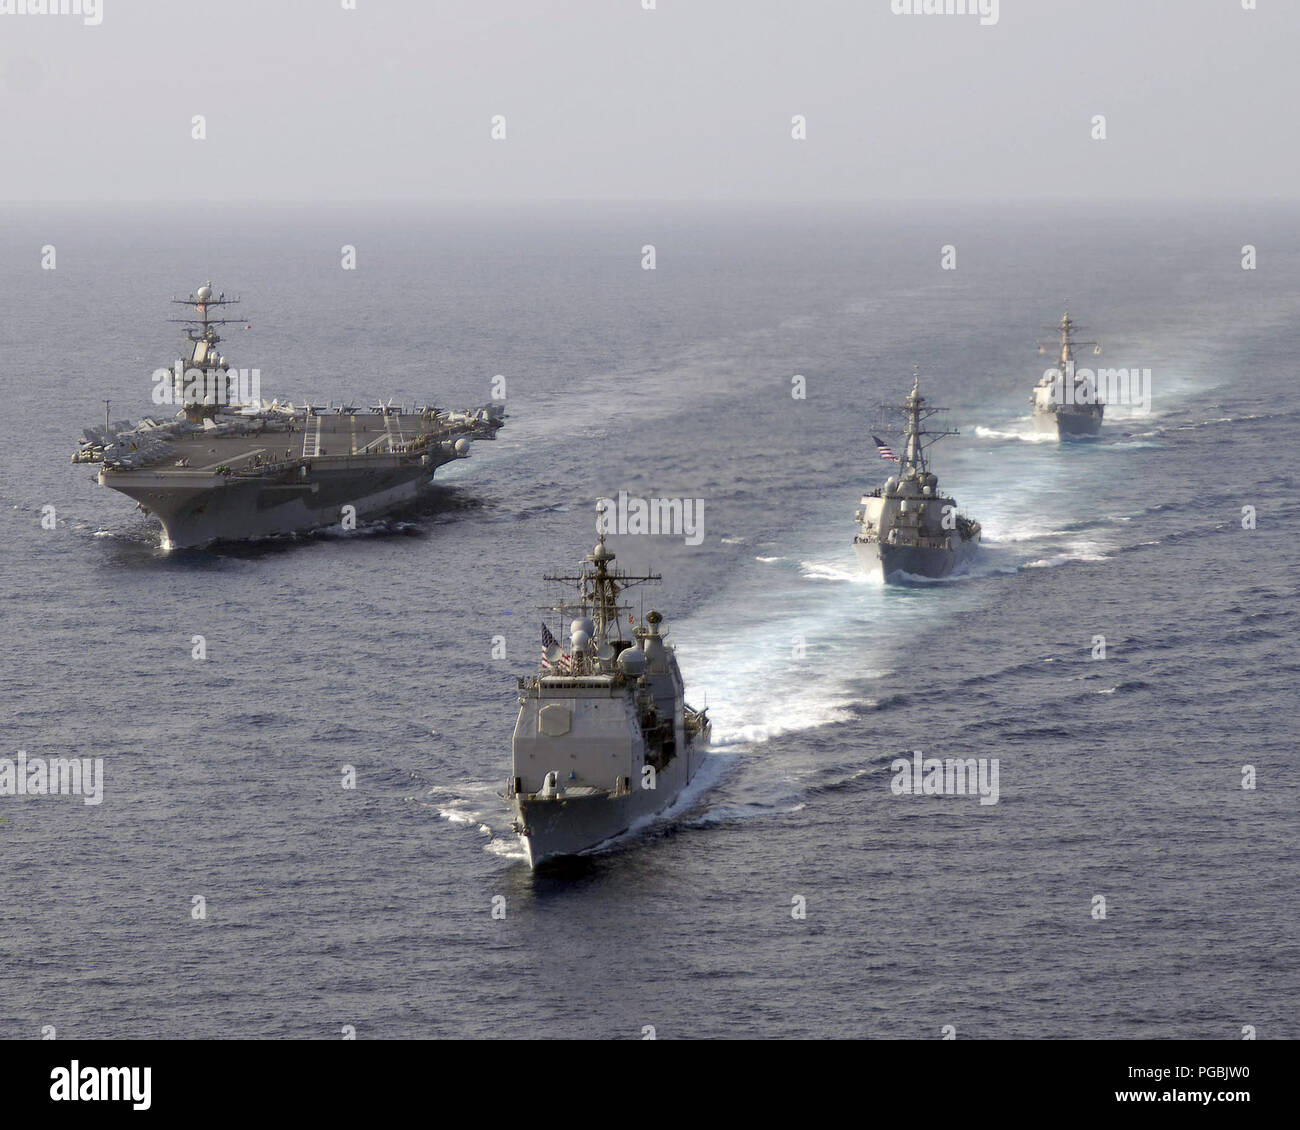 The US Navy (USN) Ticonderoga Class Guided Missile Crusier USS MOBILE BAY (CG 53) (front), Arleigh Burke Class Guided Missile Destroyers USS RUSSELL (DDG 59) and USS SHOUP (DDG 86) (right) perform a pass and review with the USN Nimitz Class Aircraft Carrier USS ABRAHAM LINCOLN (CVN 72) in the South China Sea. - Stock Image